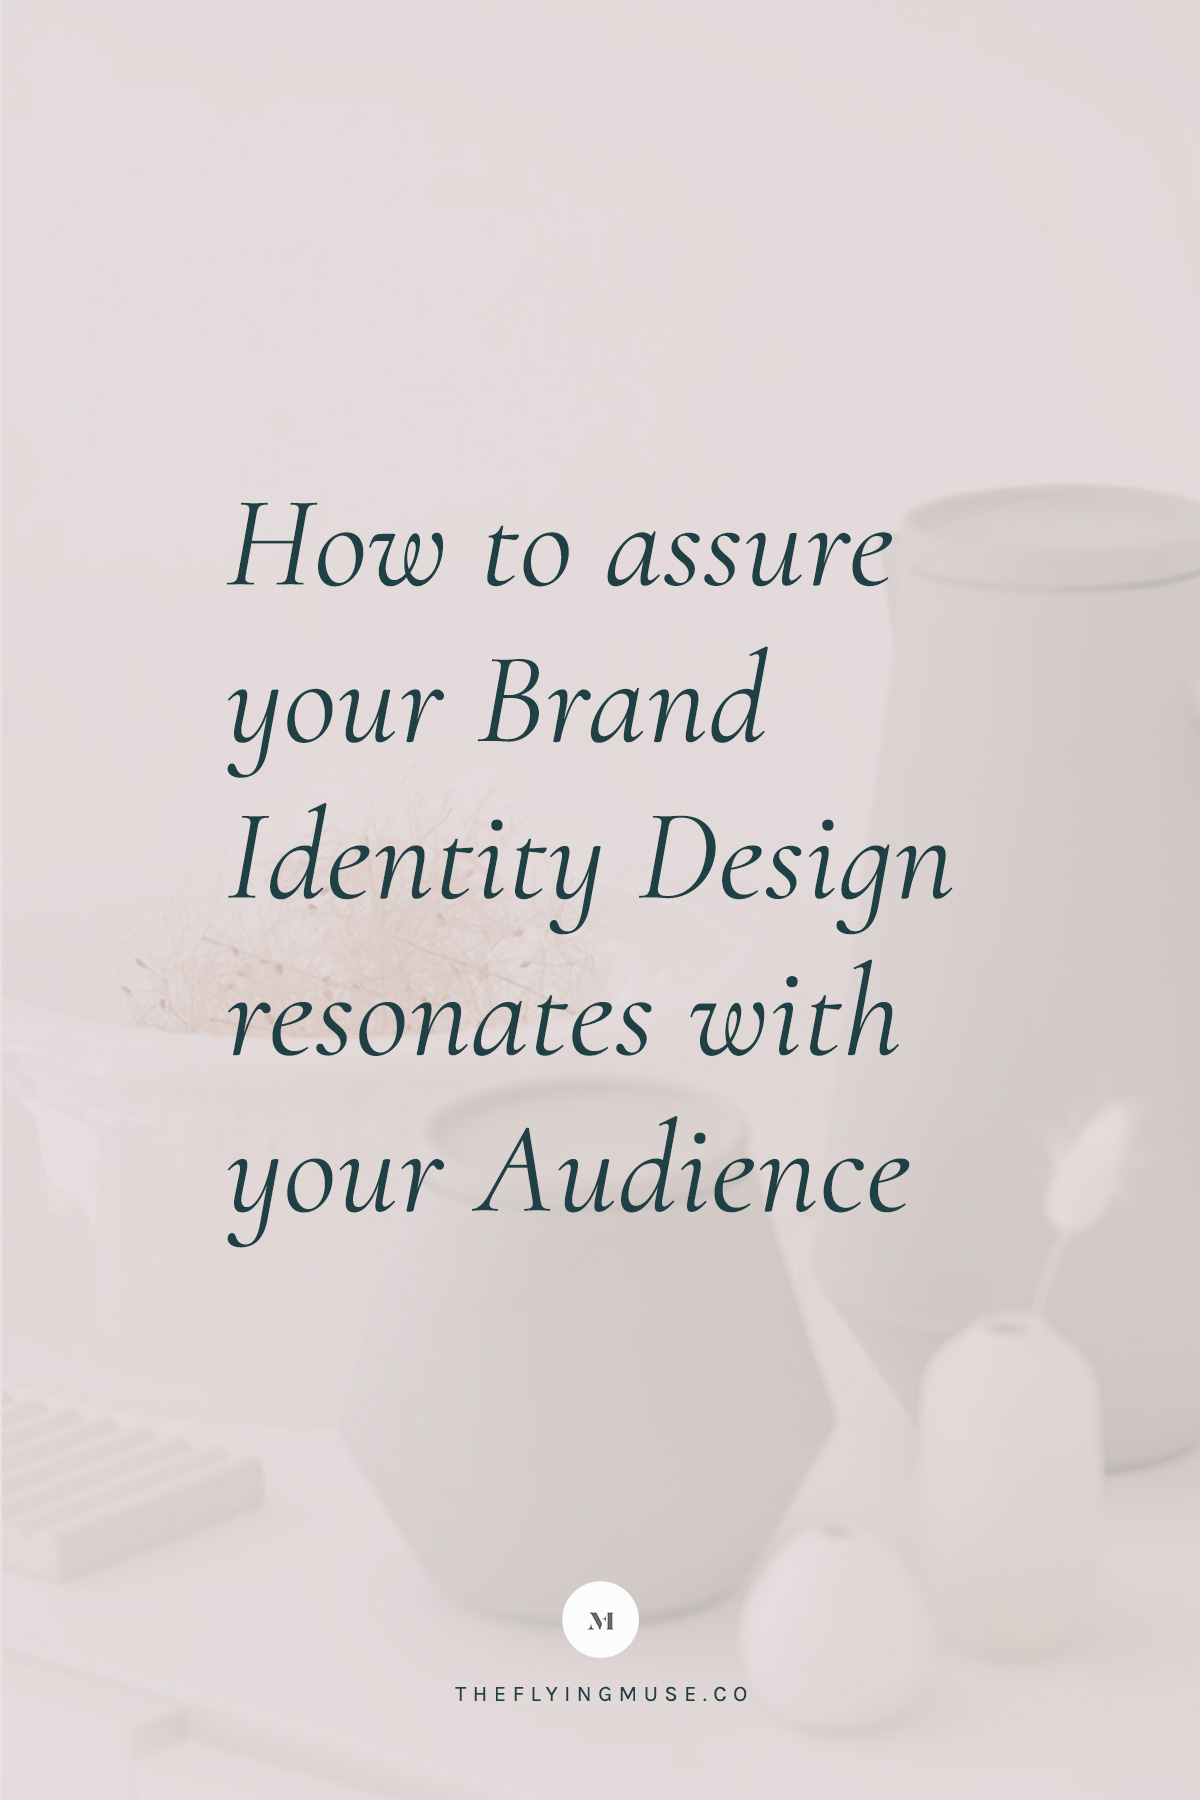 How to assure your brand identity design resonates with your audience 2